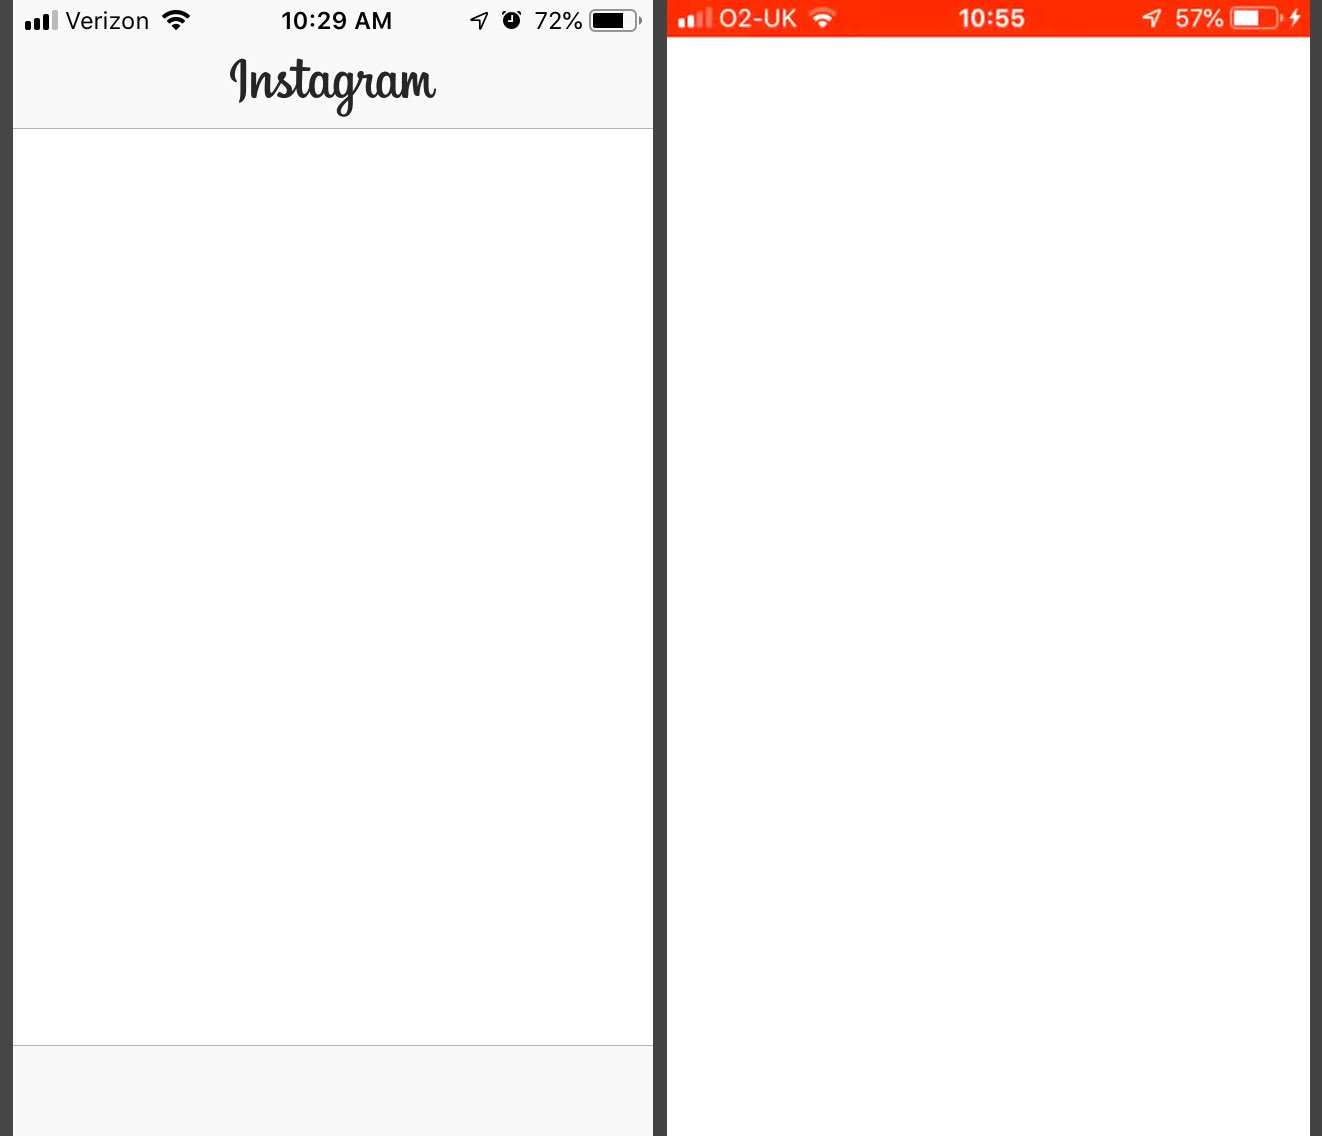 Instagram Only Showing a Blank White Screen for Many Users